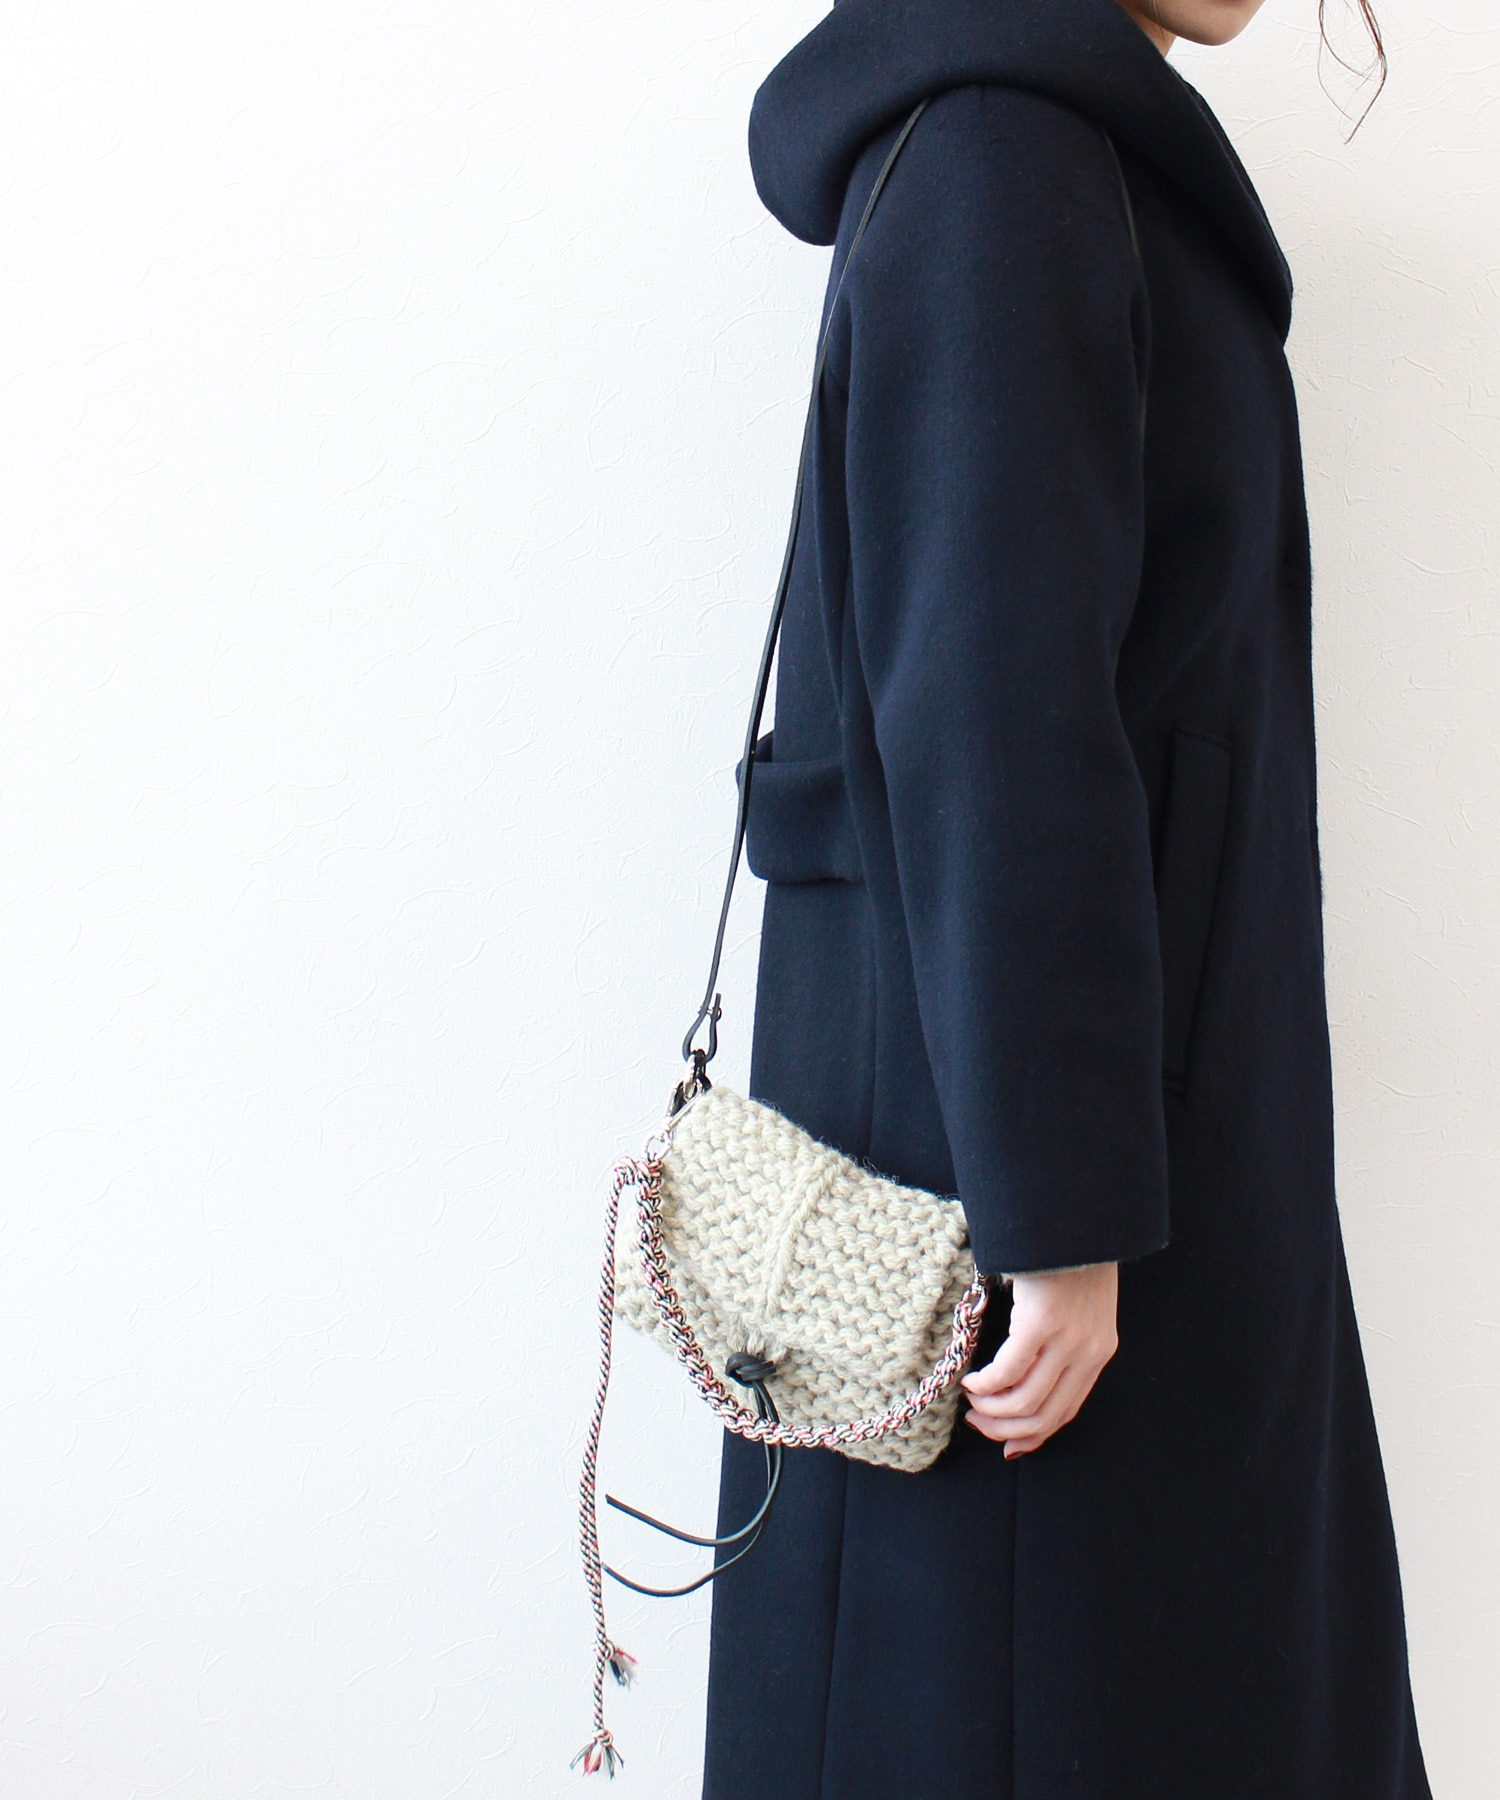 【MUUN / ムーニュ】 INUIT GARTER KNIT BAG★